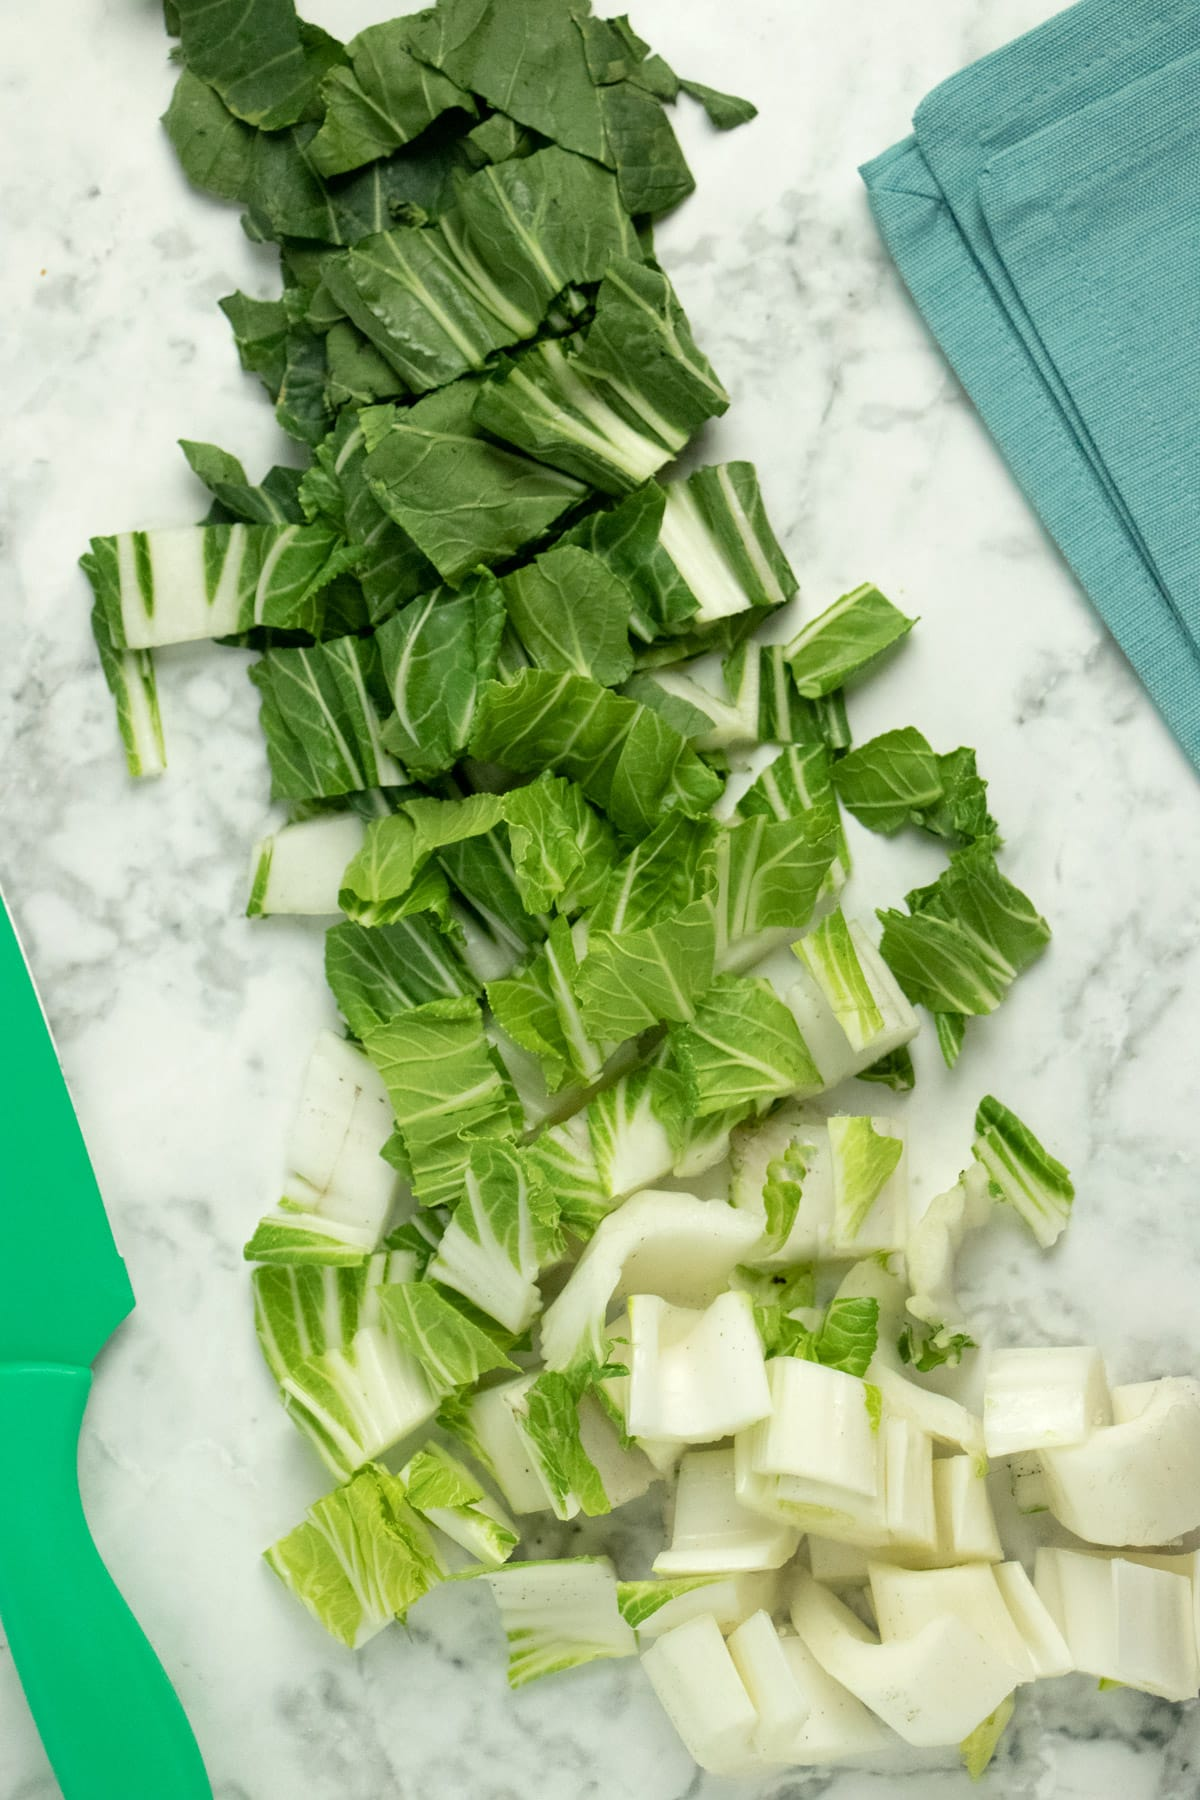 photo of chopped bok choy on a marble countertop